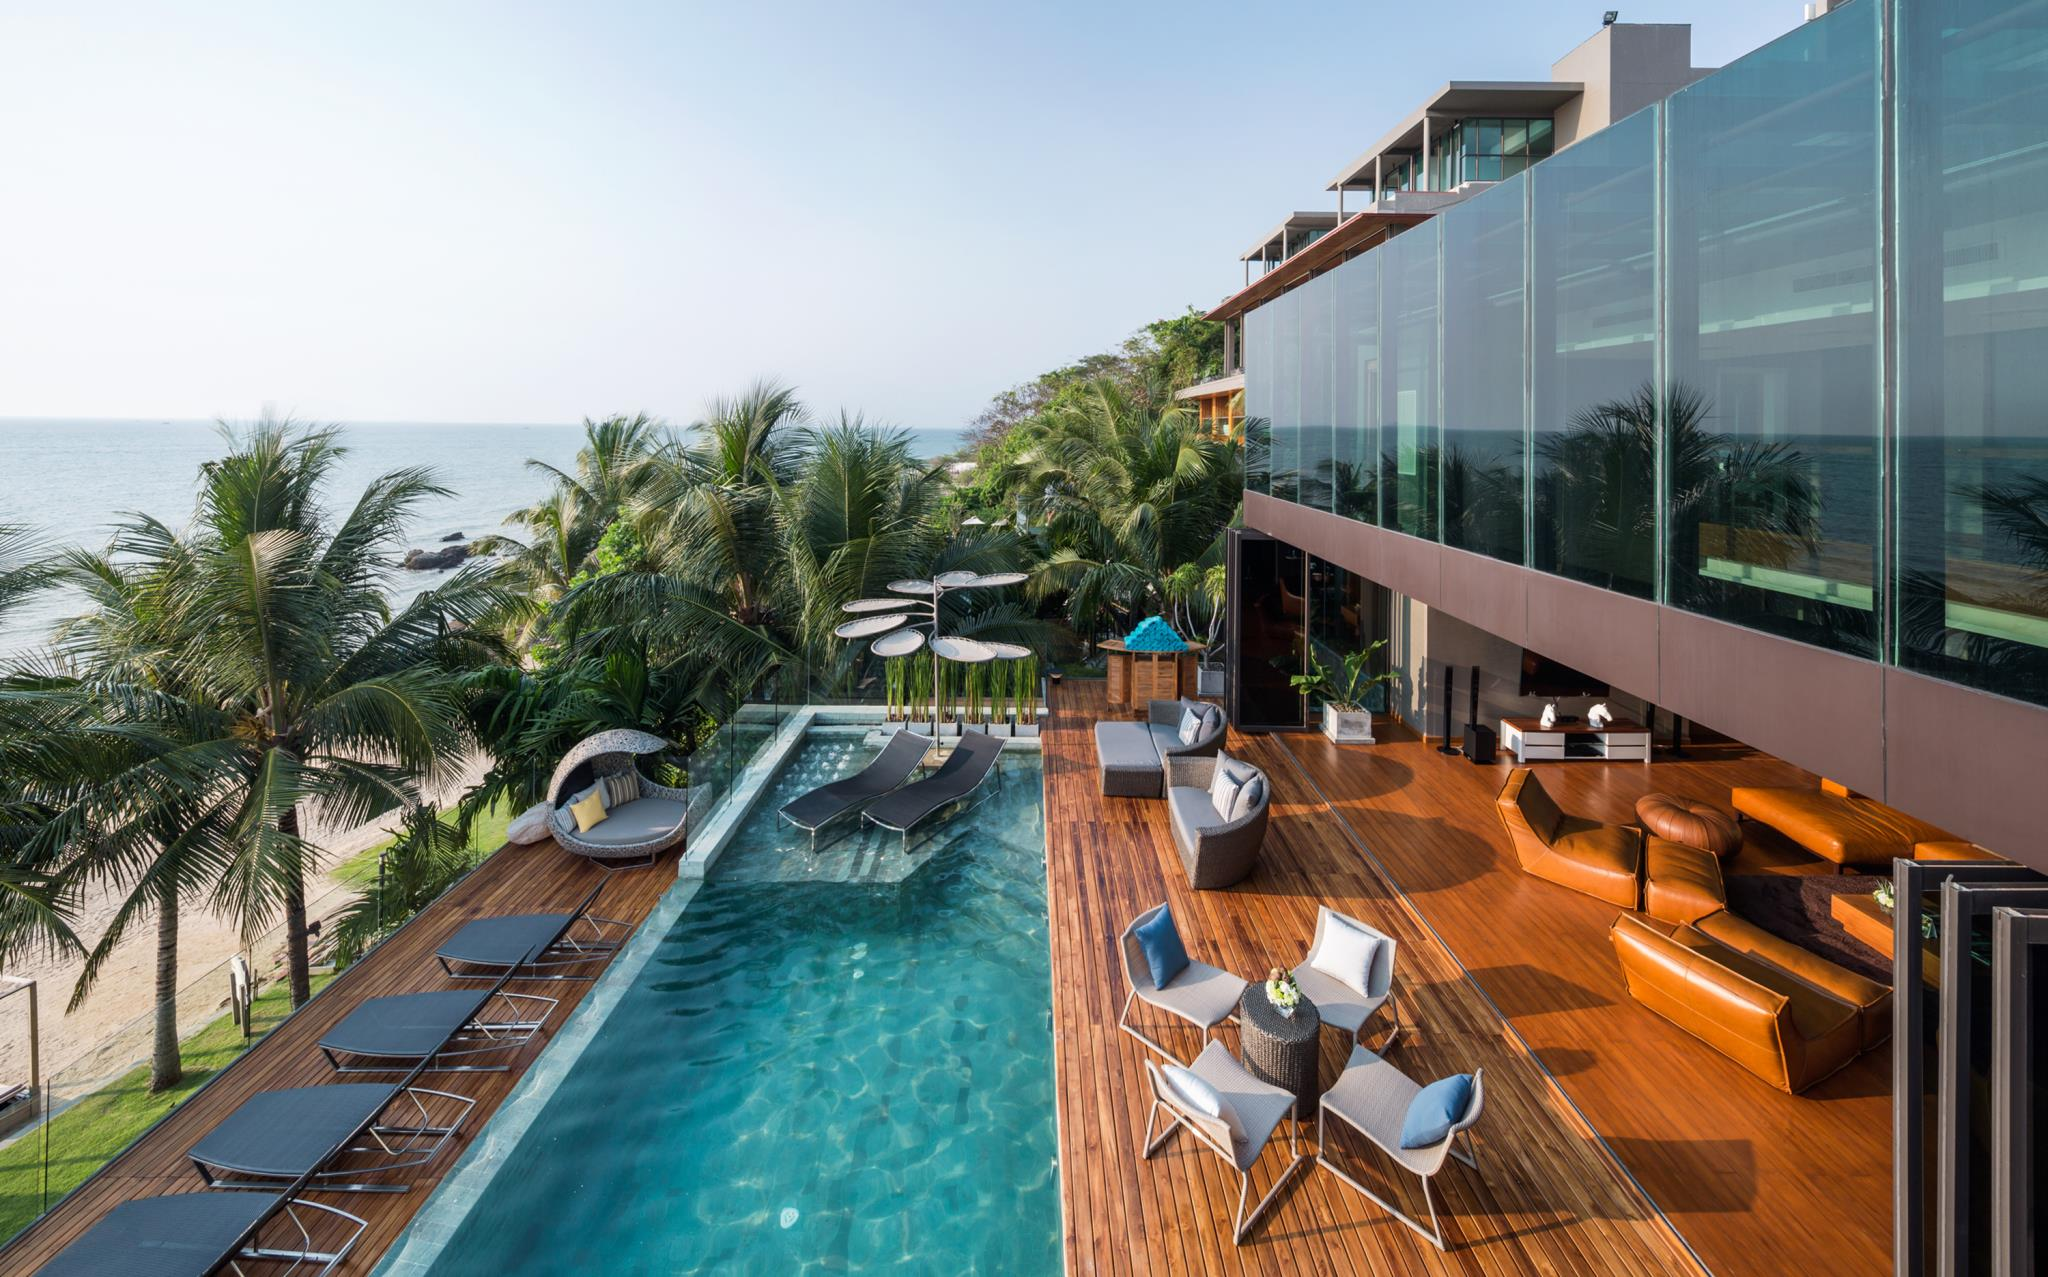 Cape Dara Resort - Top 5 best luxury hotels in Pattaya